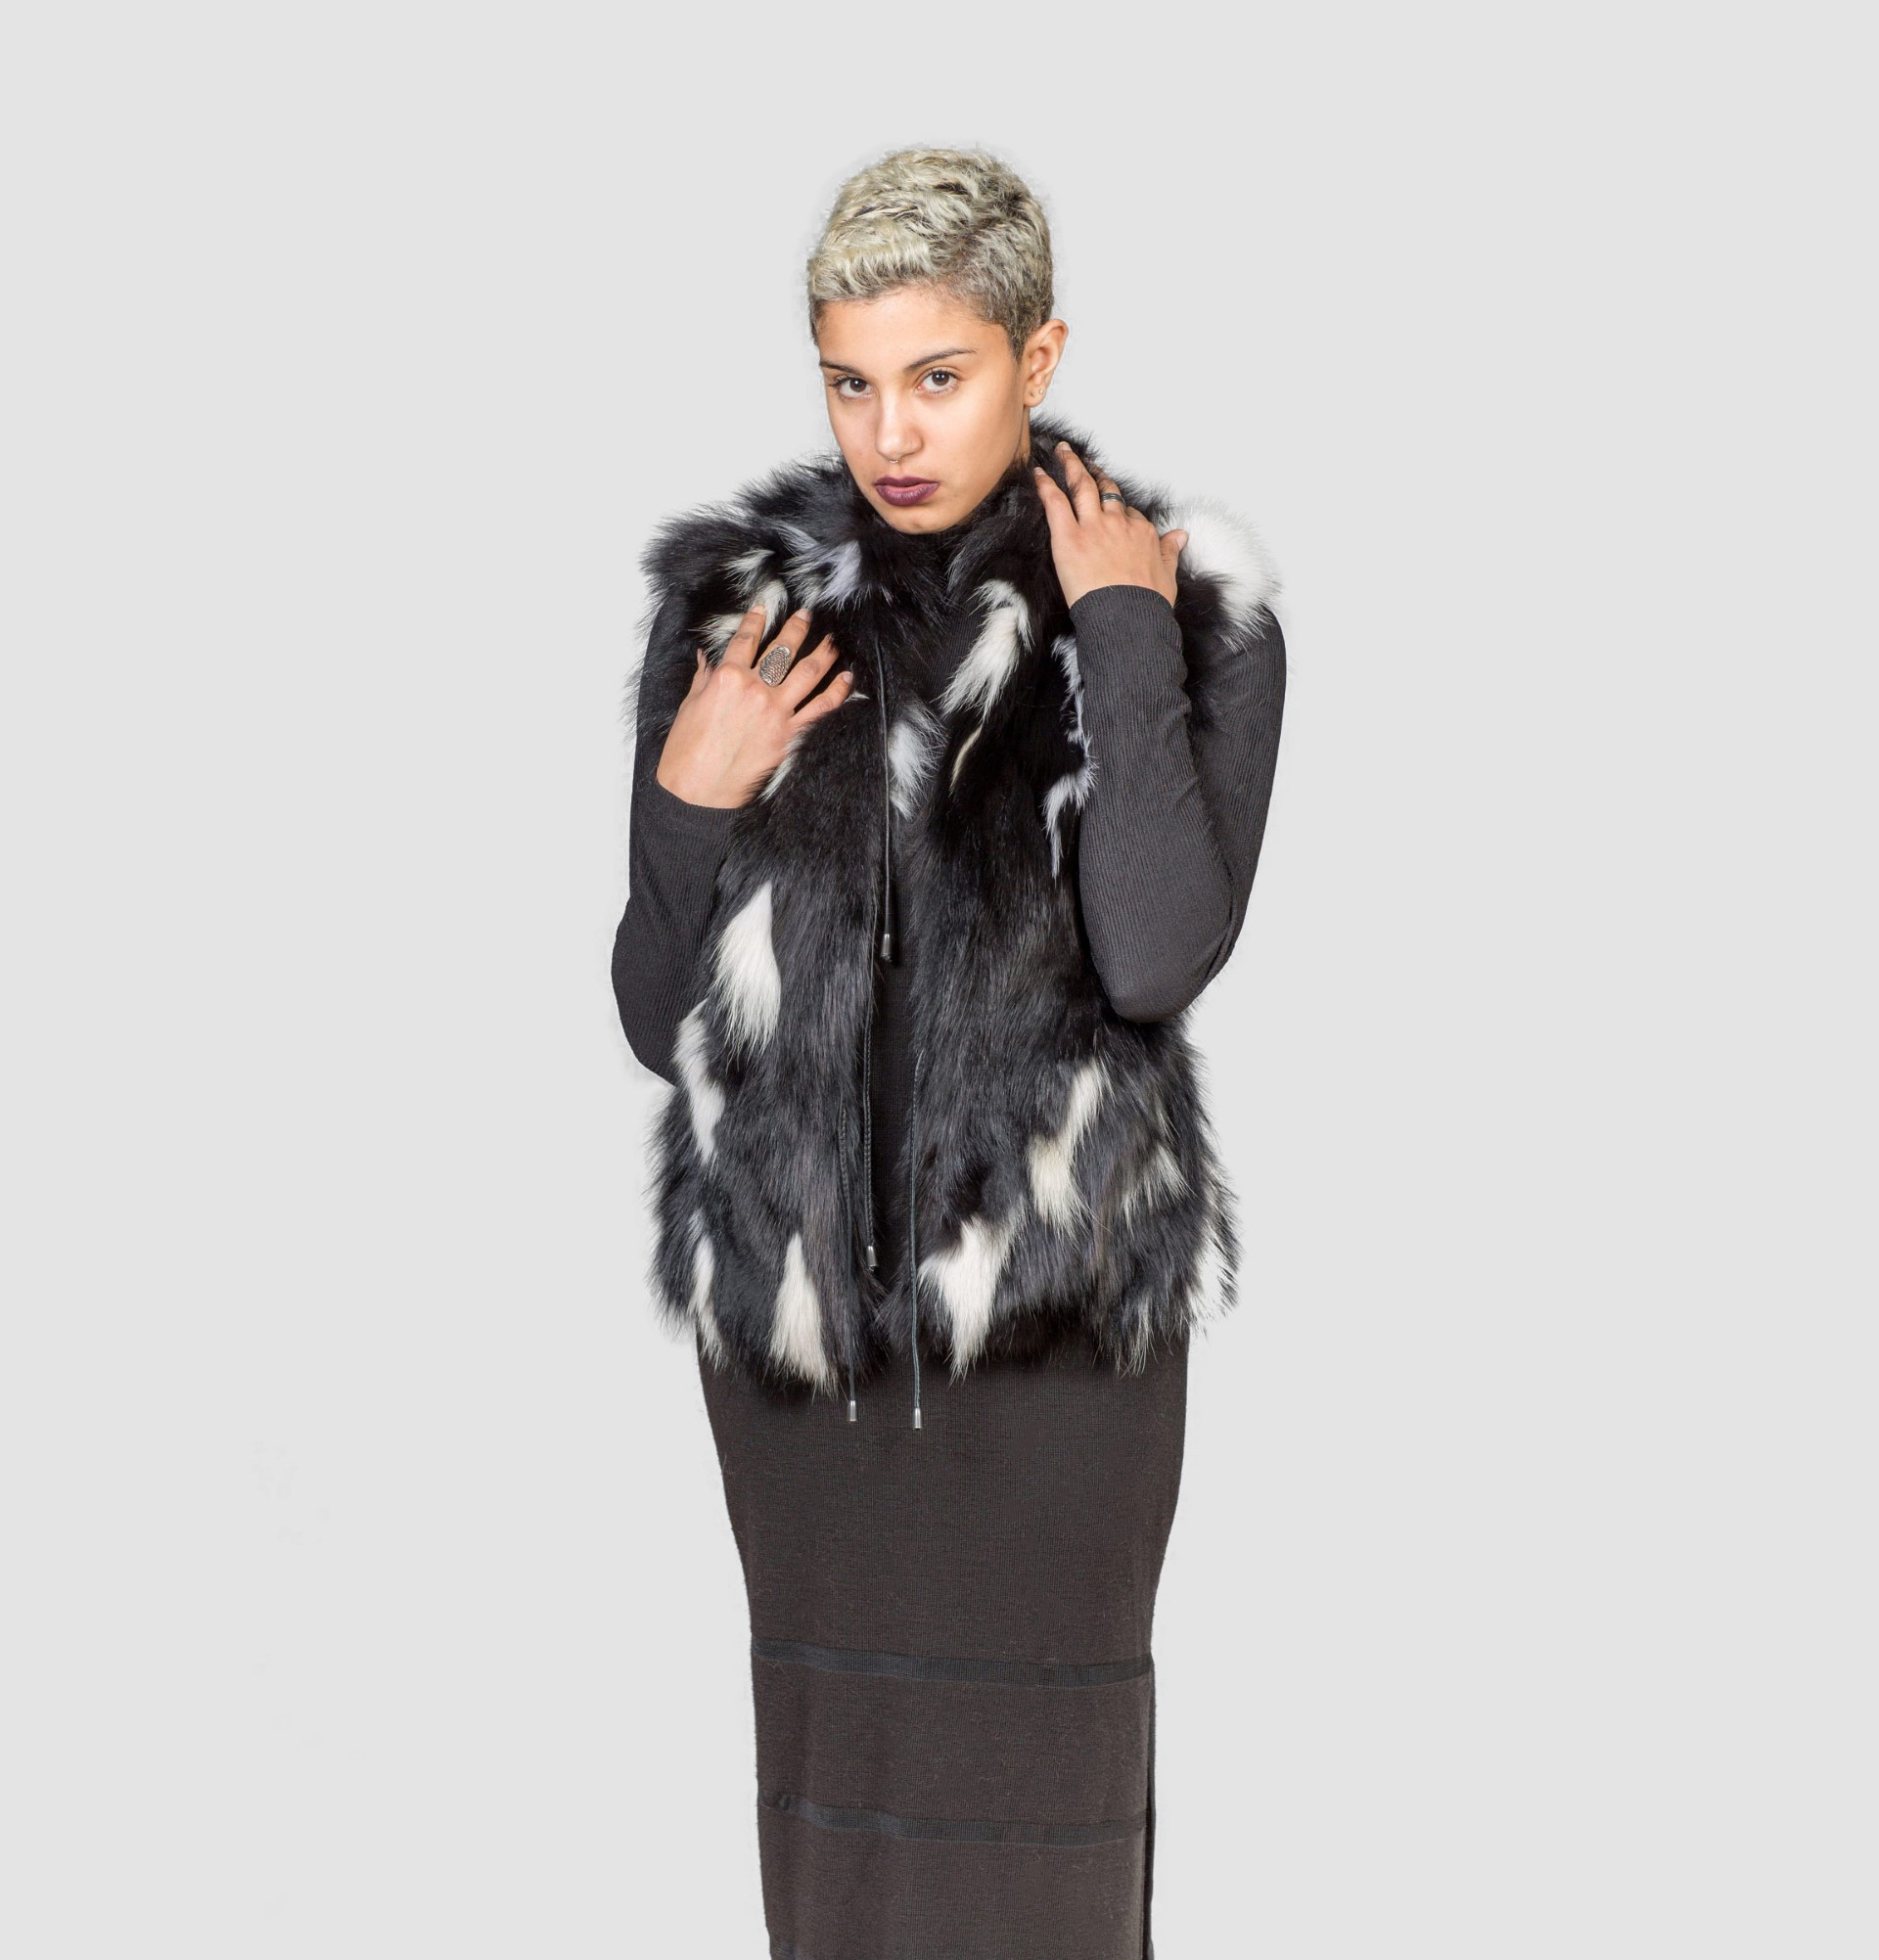 Black and White Jacquard Vest with Fur Collar. $ Heather Grey Comfy Vest with Side Pockets. $ Cherry Red and Black Plaid Open Drape Vest. $ Charcoal Plaid Moto Vest with Fur and Zipper Detail. $ Mustard Hidden Zipper Vest with Side Pockets. $